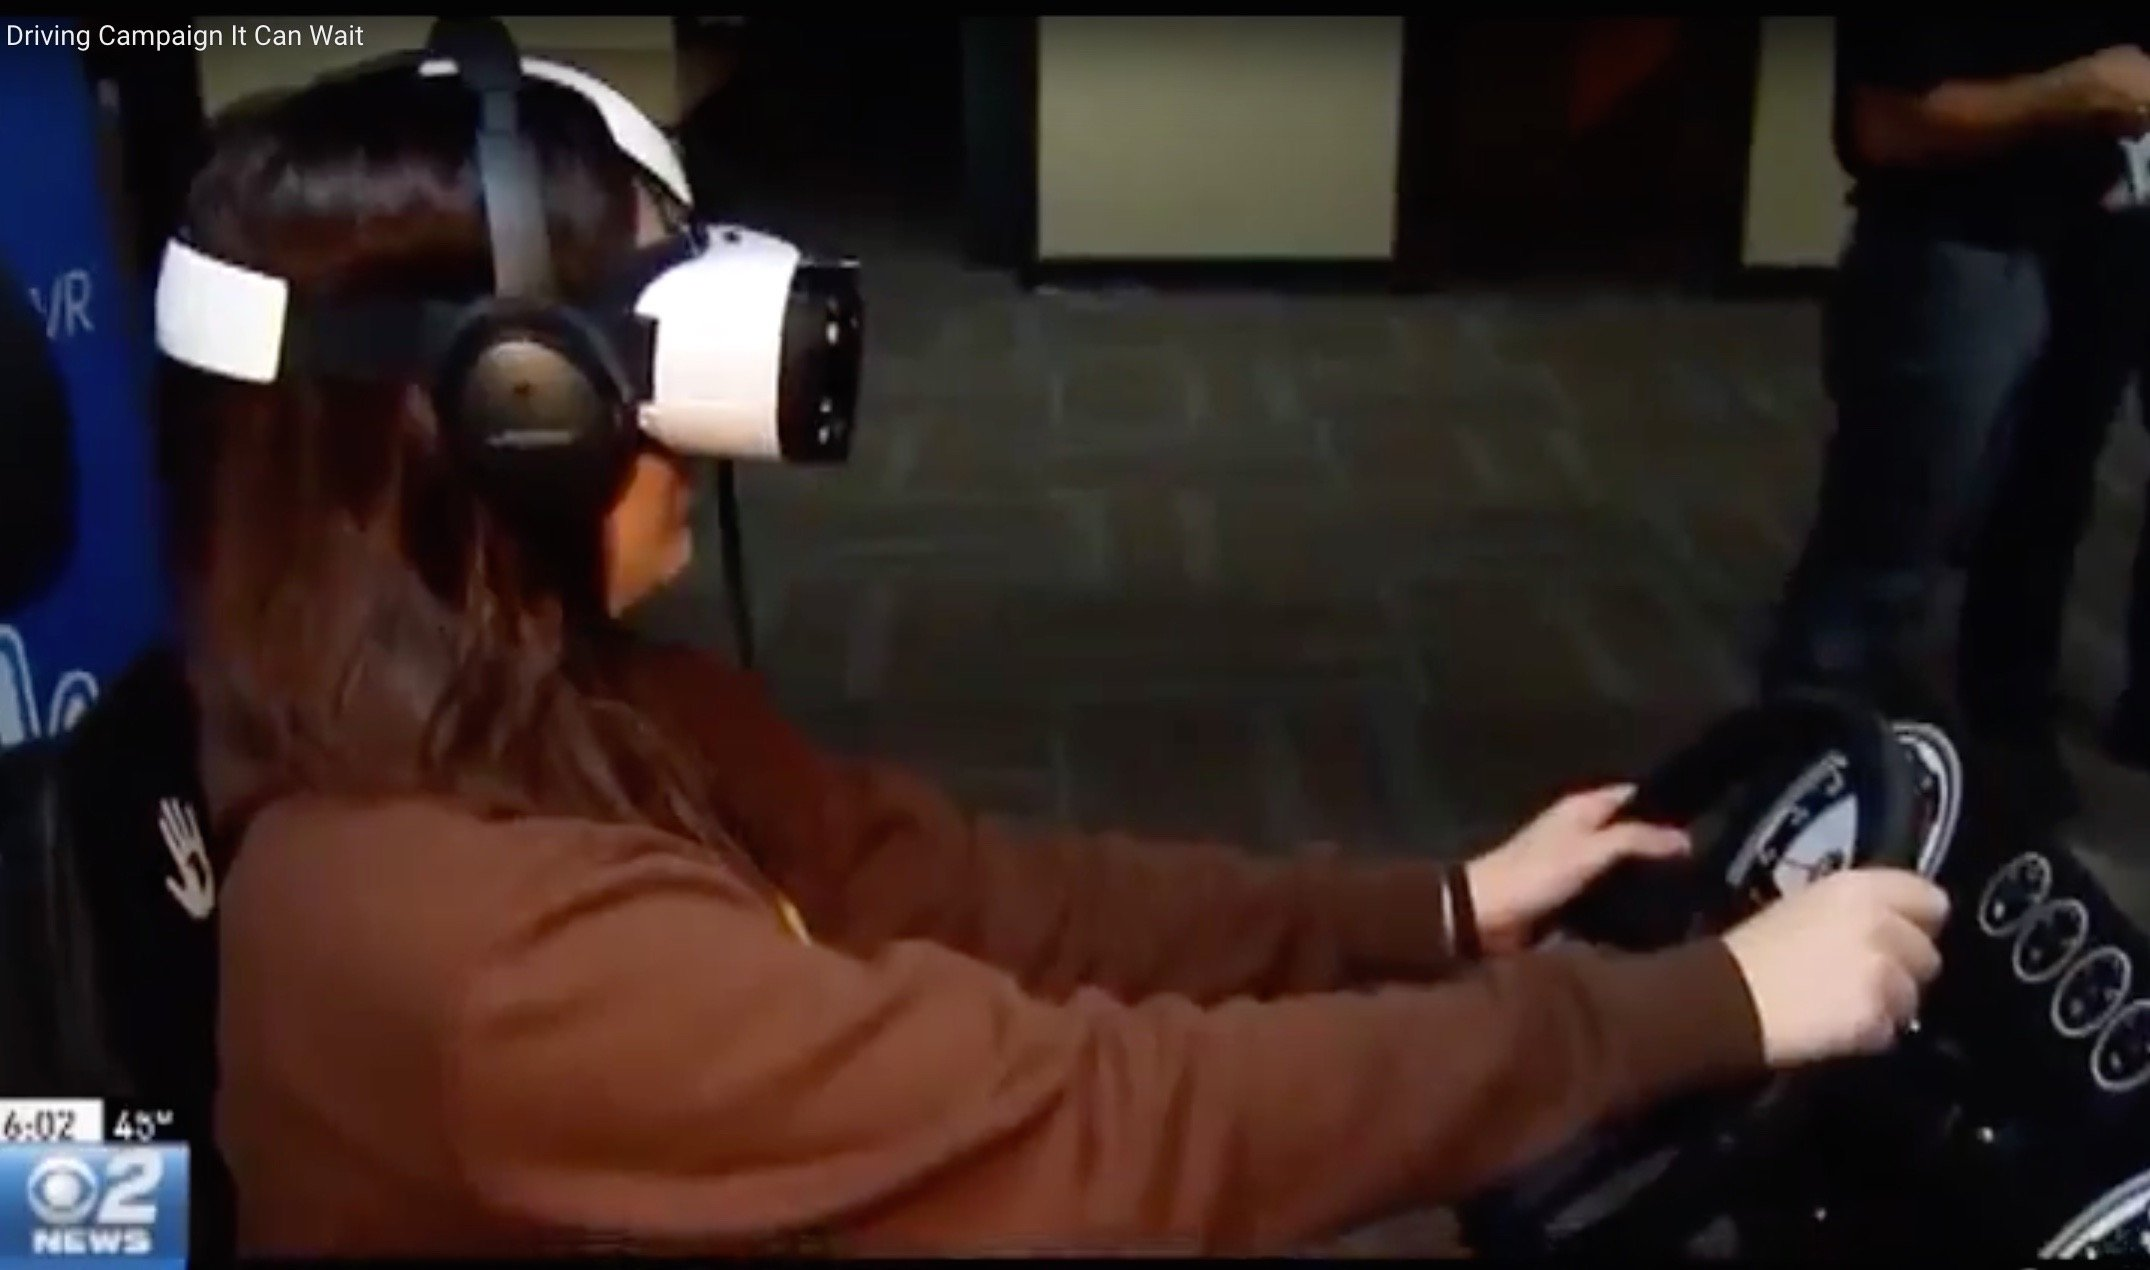 Distracted Driving in Virtual Reality